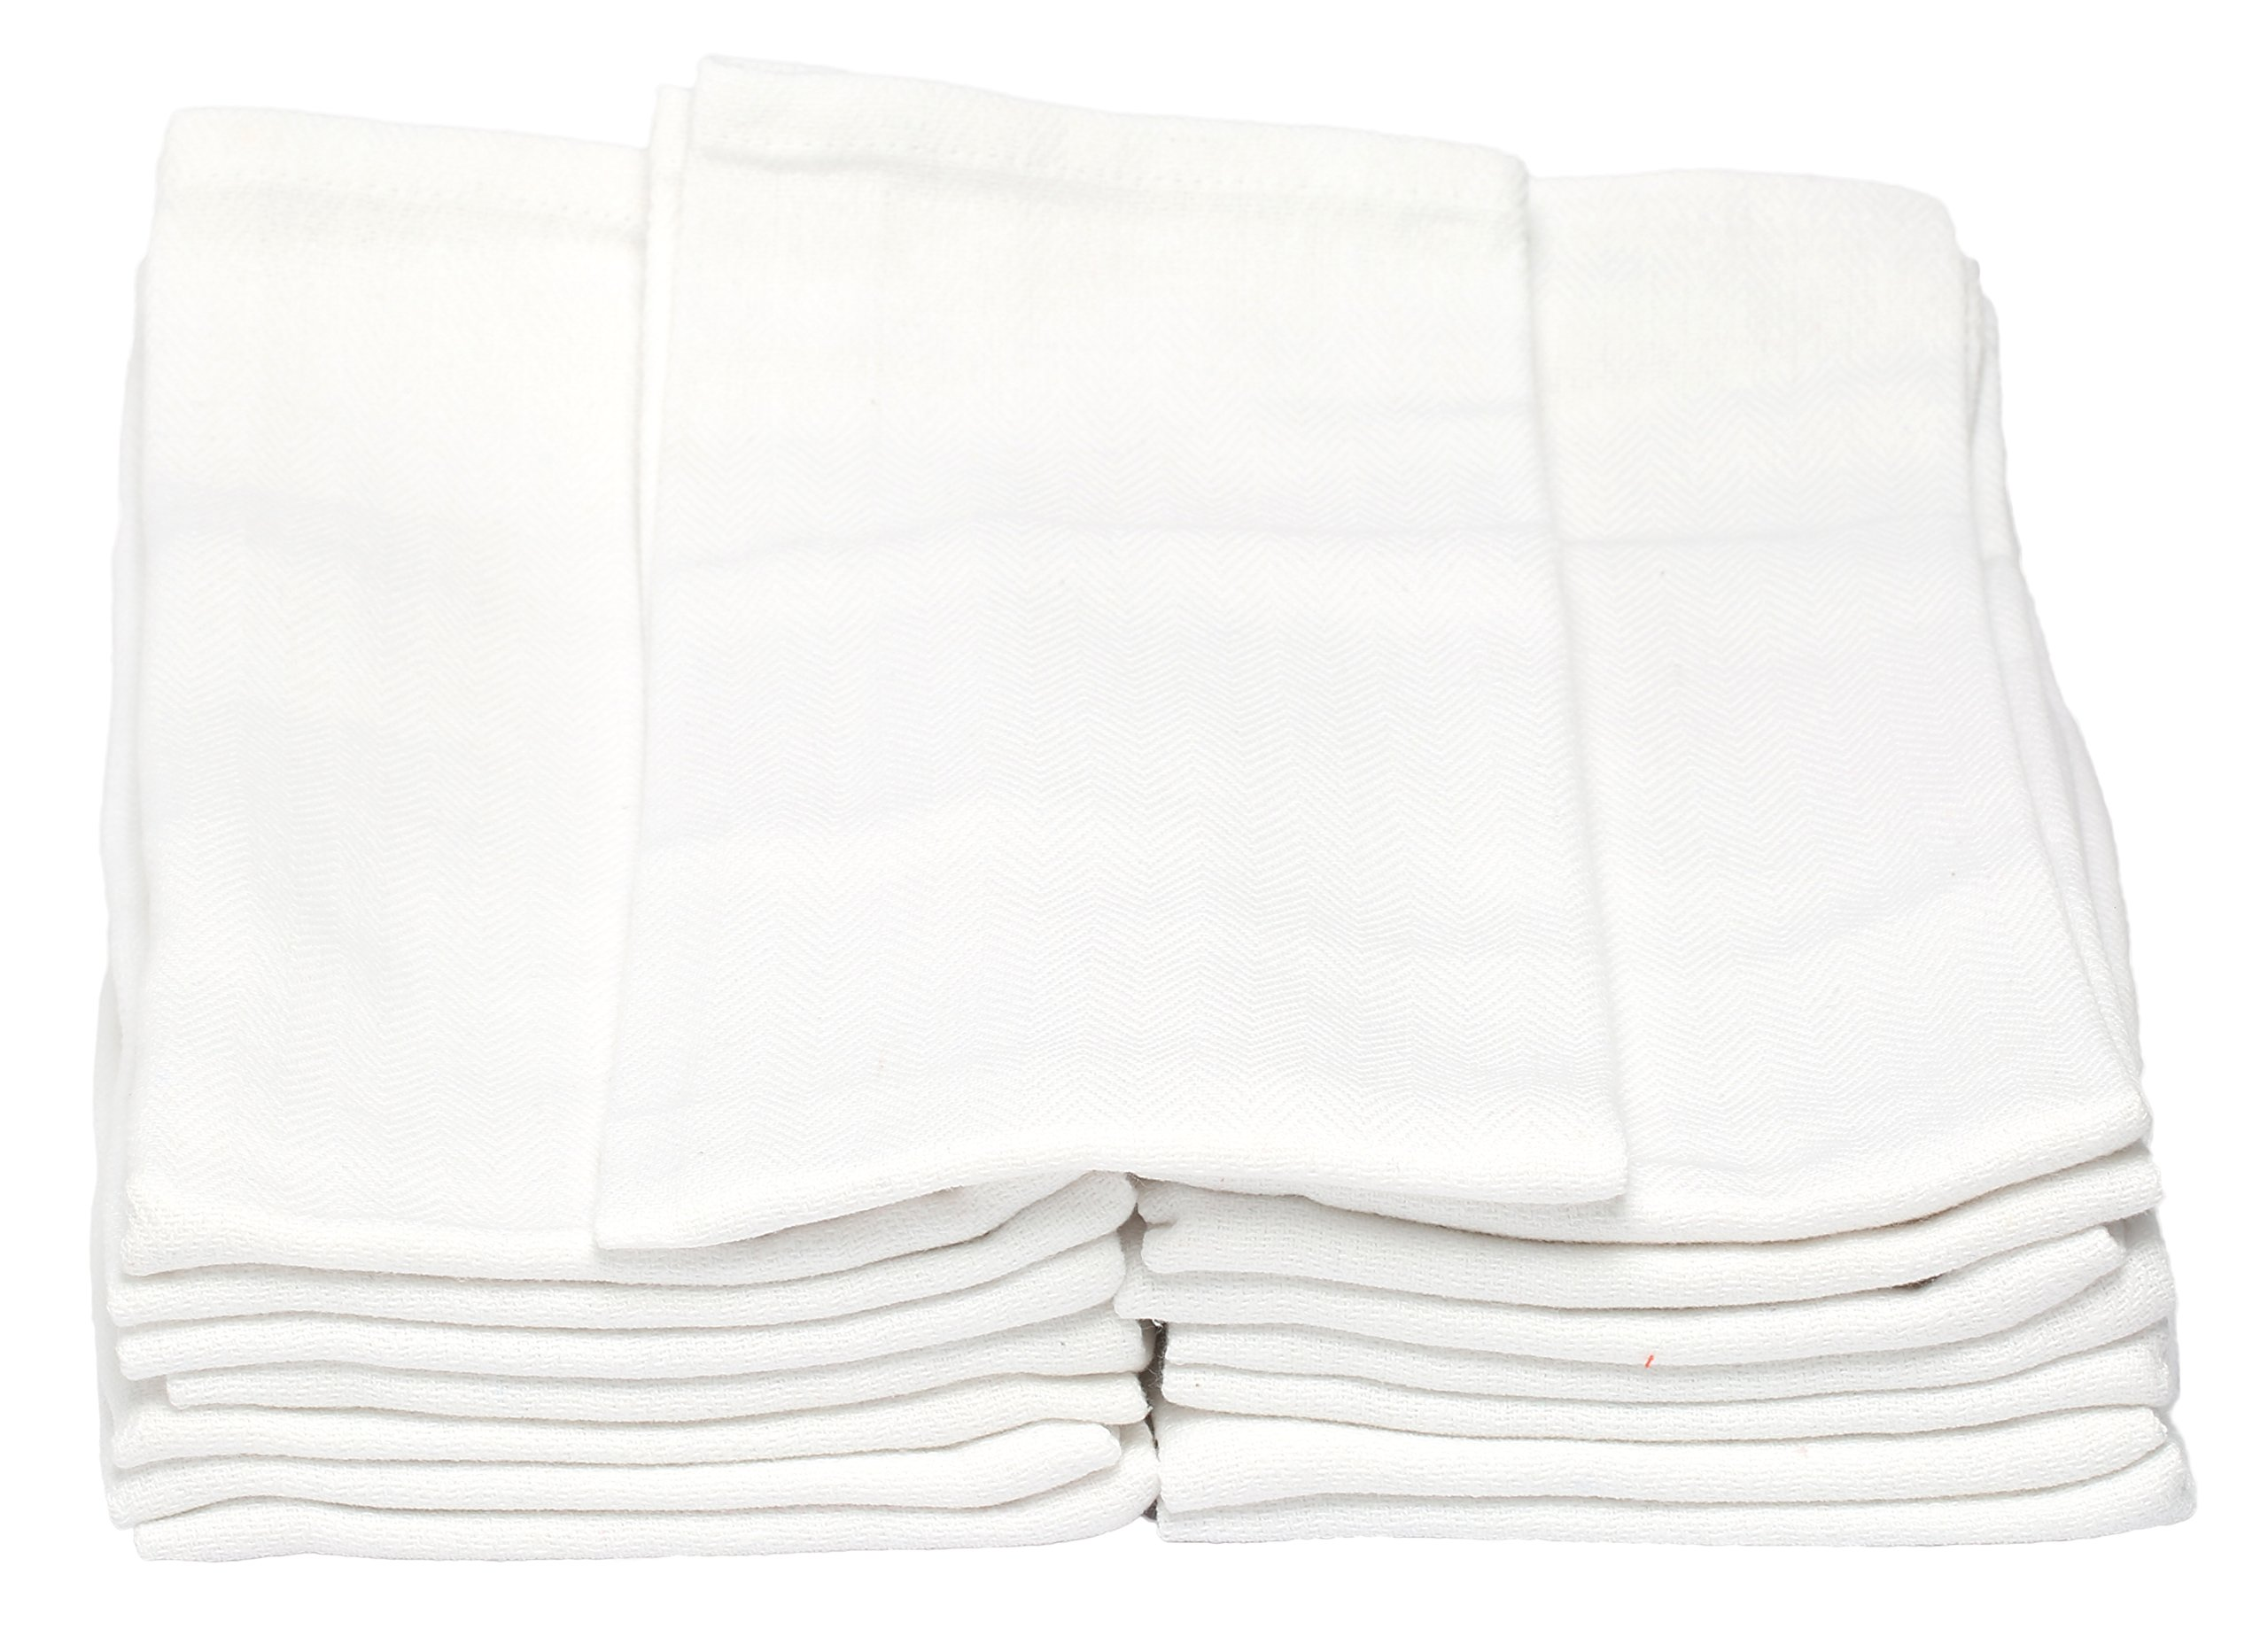 Melange 180 PACK Classic Kitchen Towels, 100% Natural Cotton, 14 x 25, Commercial Restaurant Grade, Herringbone Weave Dish Cloth, Absorbent and Lint-Free, Machine Washable, Solid White